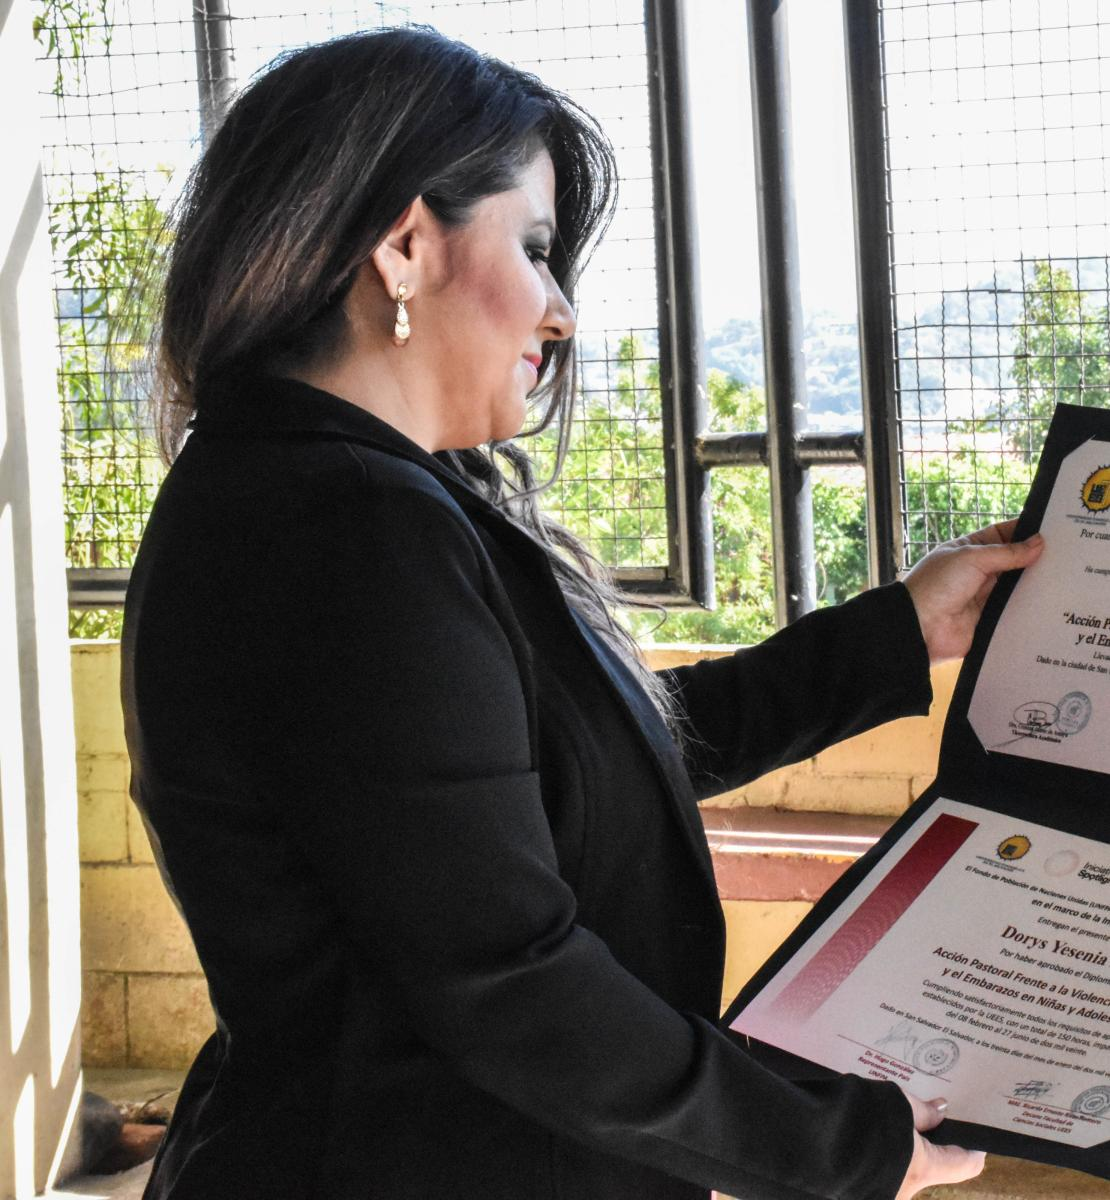 A woman with dark hair and a black jacket looks down at her diploma.